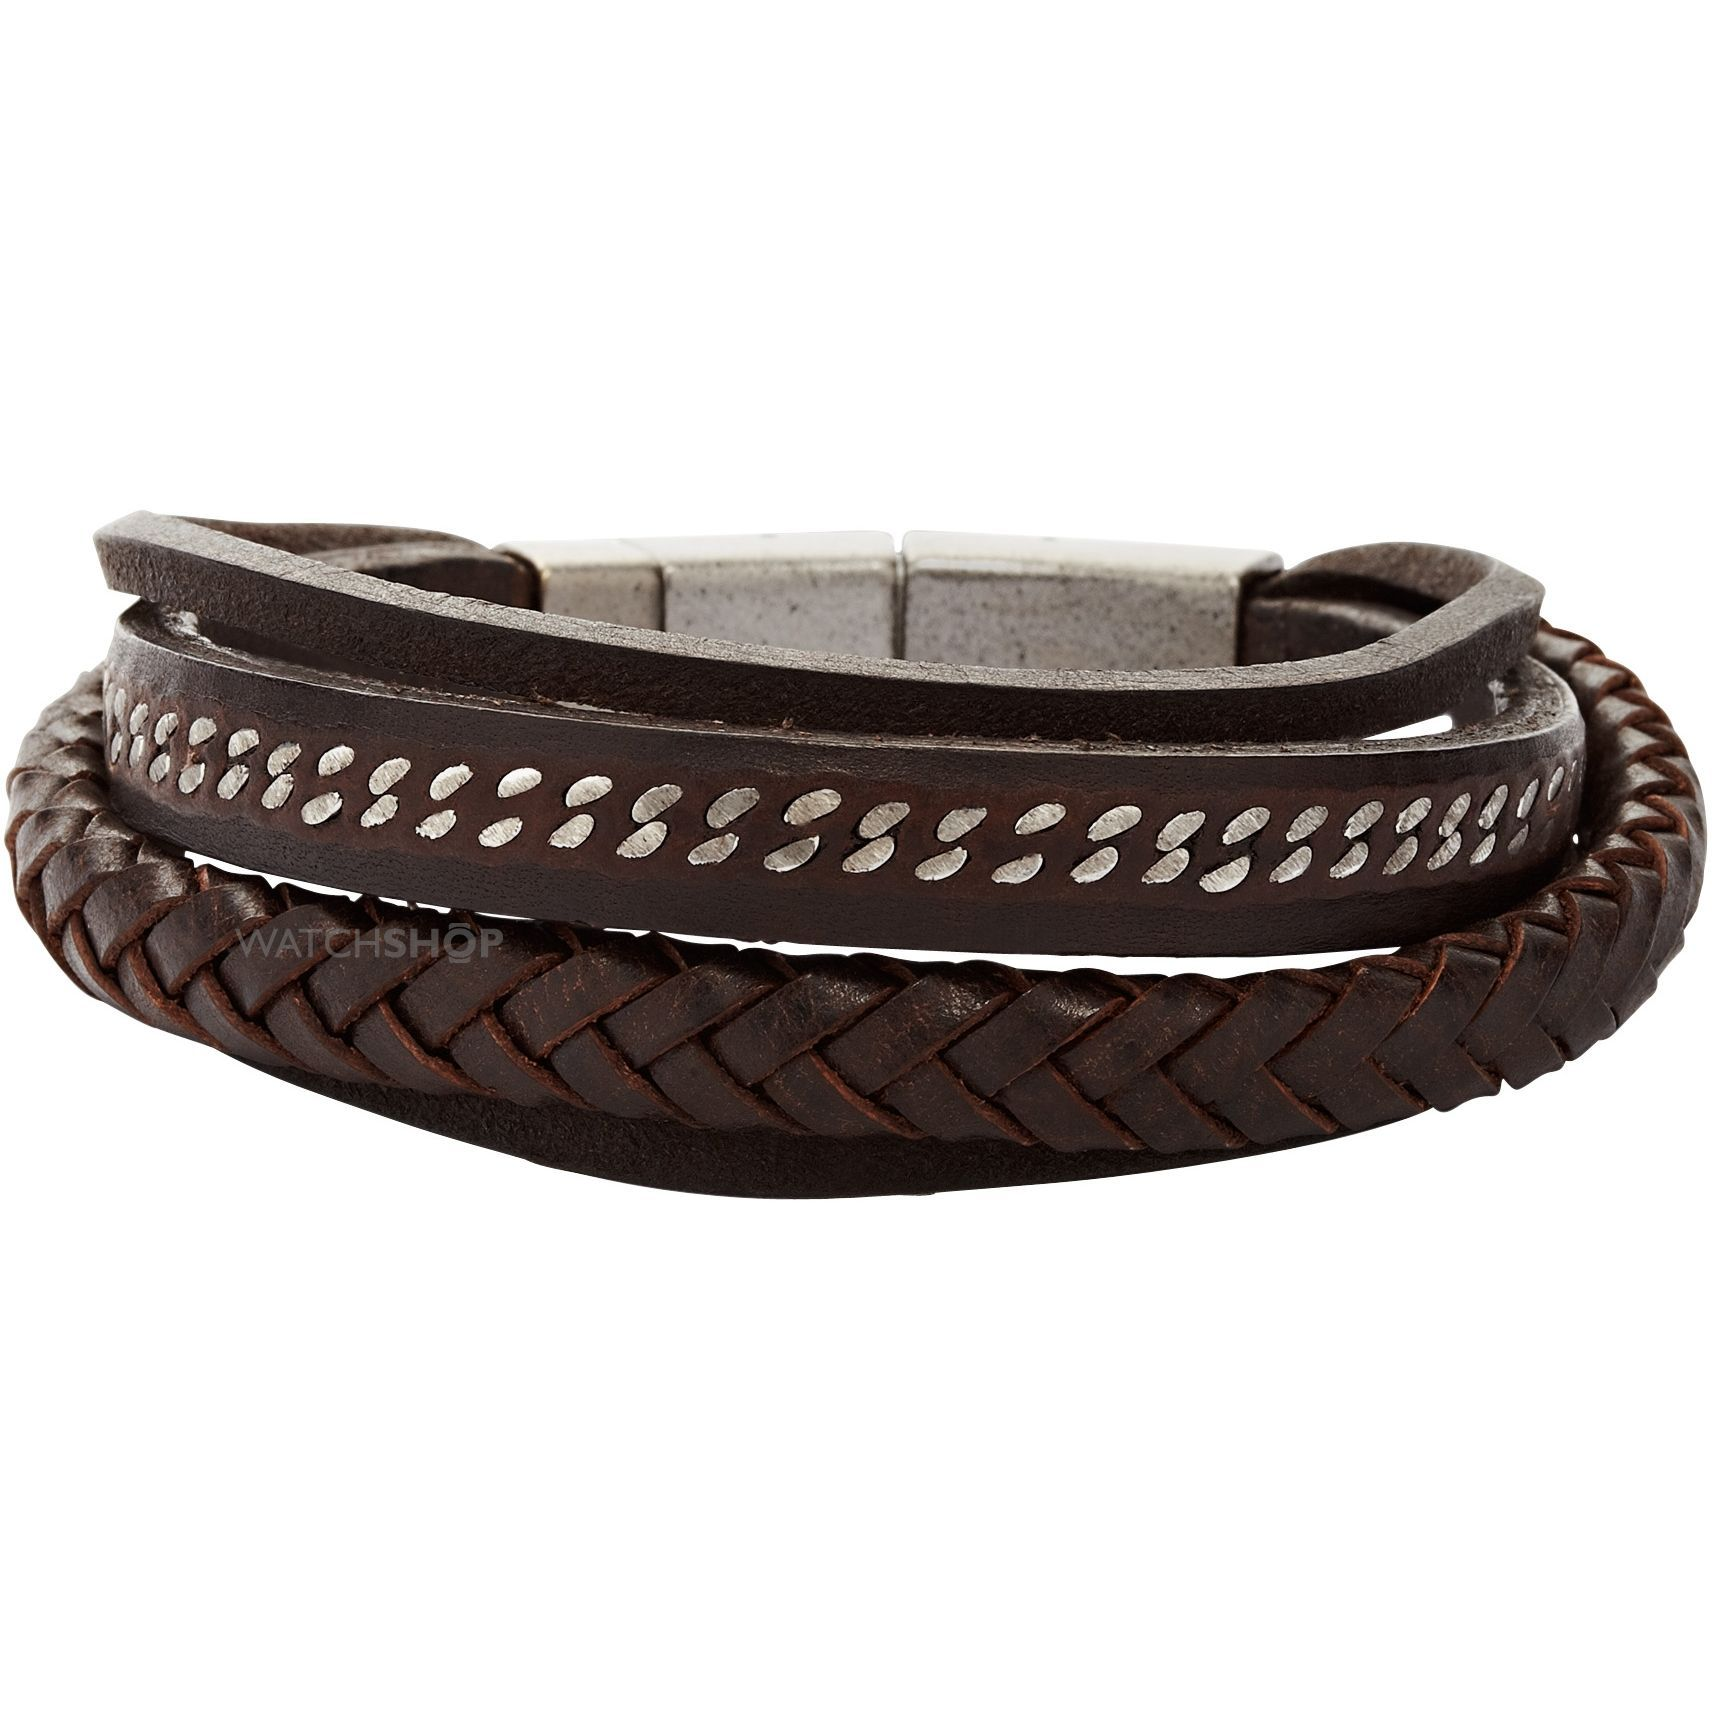 Fossil Jewellery Men's Stainless Steel Leather Bracelet